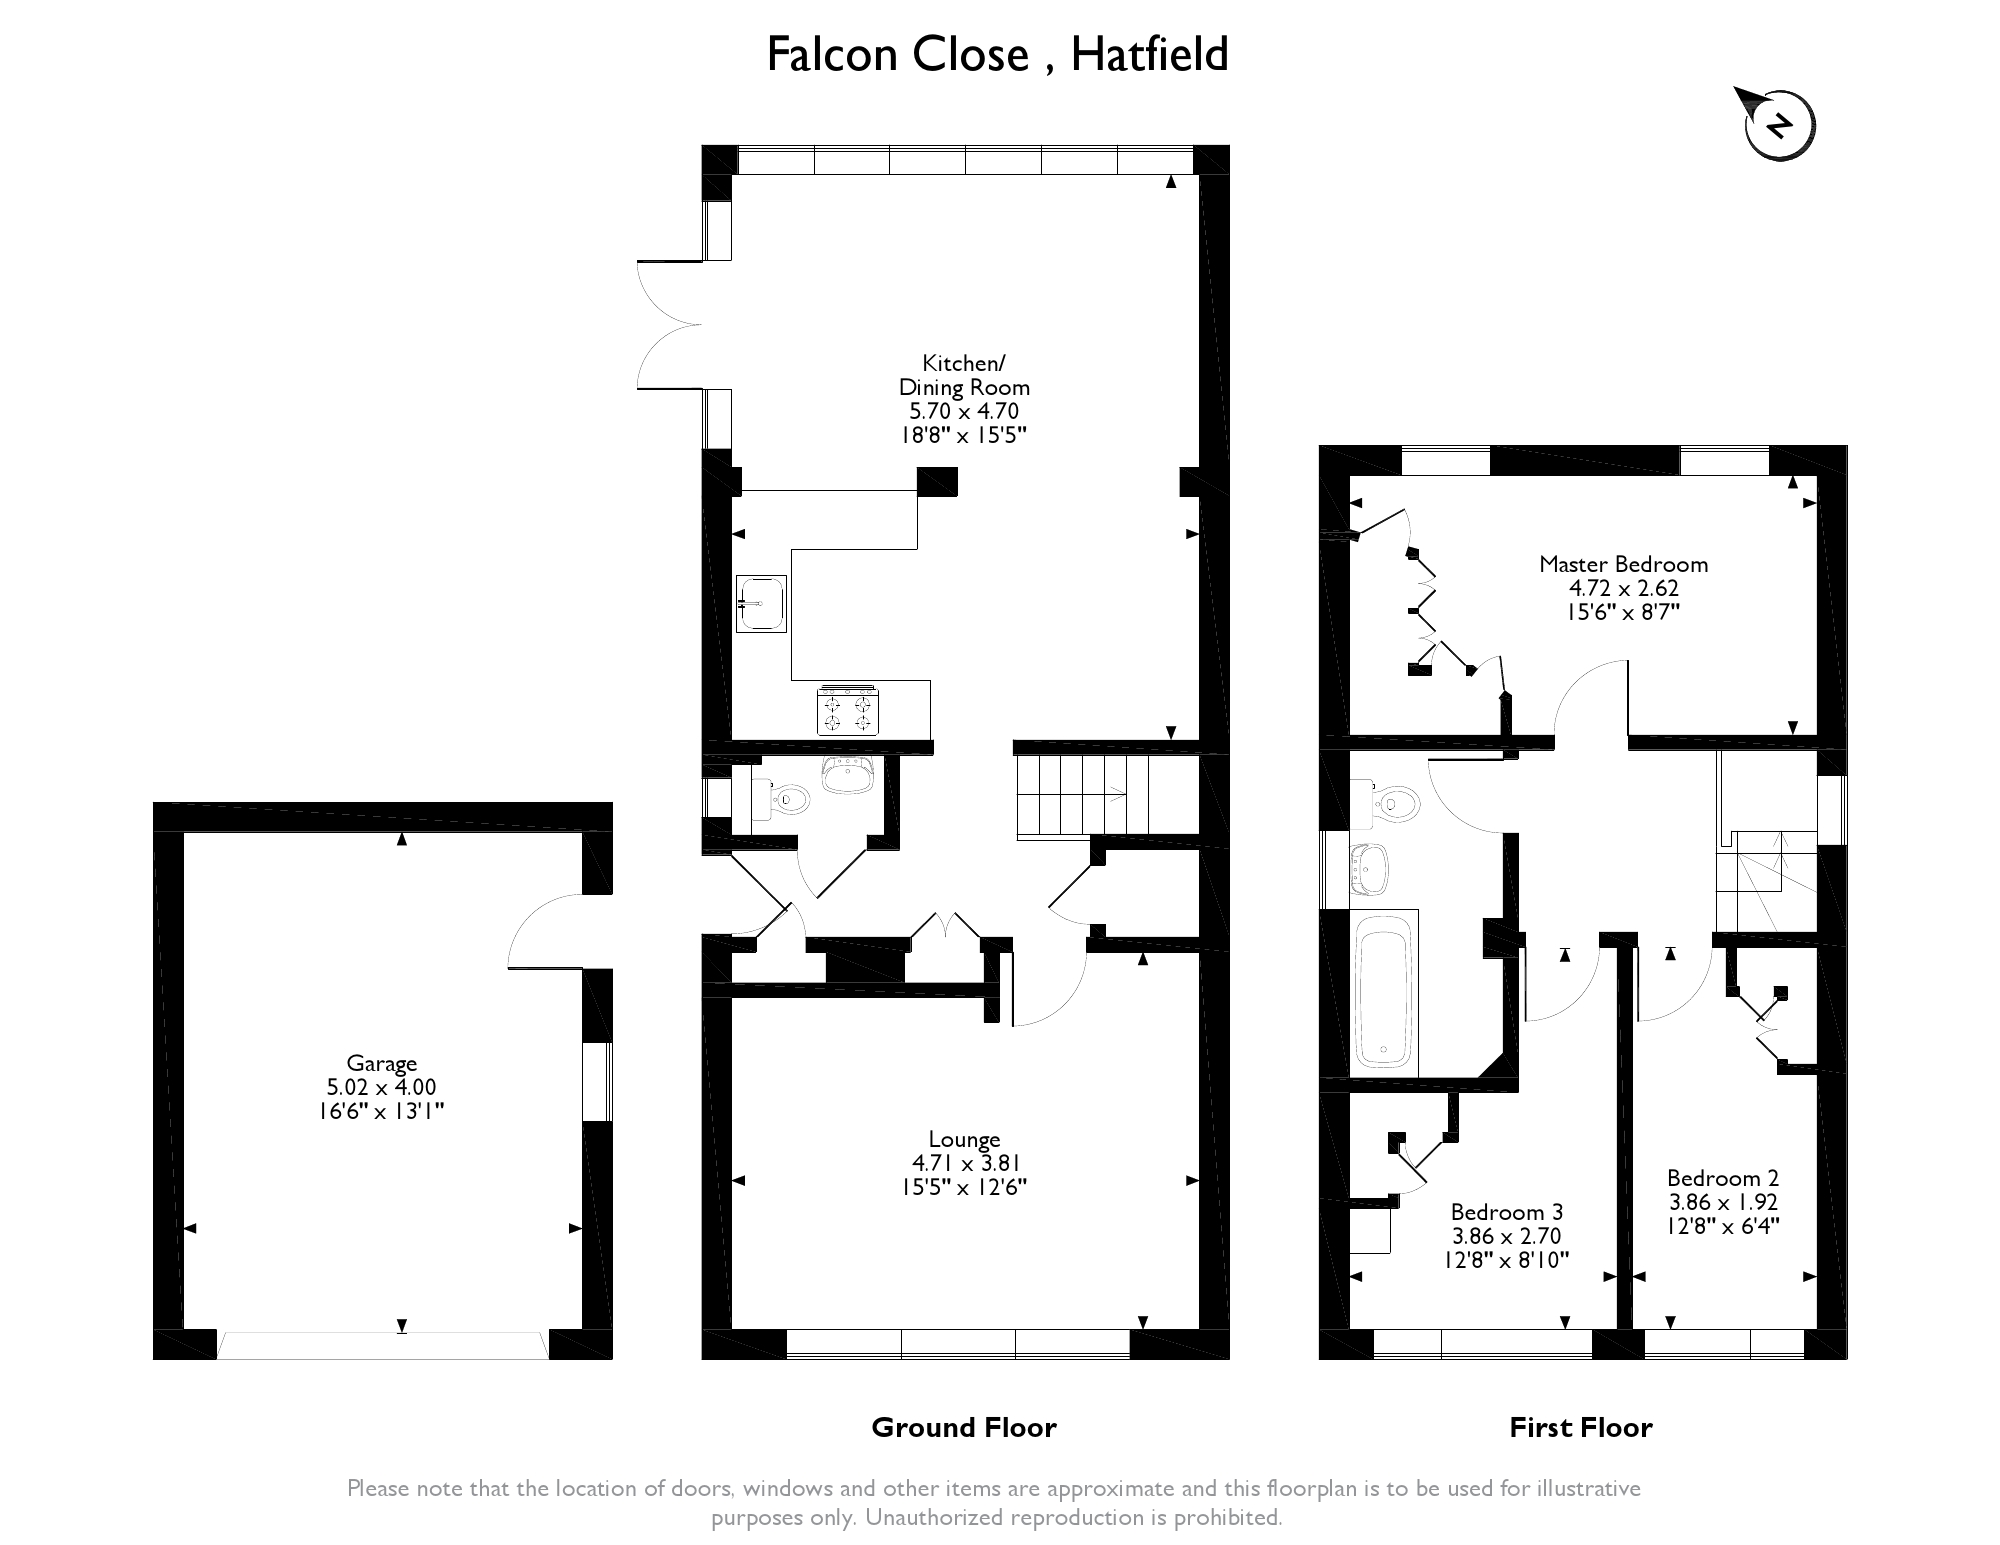 Ad Classics Weissenhof Siedlung Houses 14 And 15 Le Corbusier And Pierre Jeanneret furthermore Autodesk Announces Autocad Freestyle together with Atterbury Duplex 5283 further 953305 in addition Garage Conversion Plans. on detached villa house plans